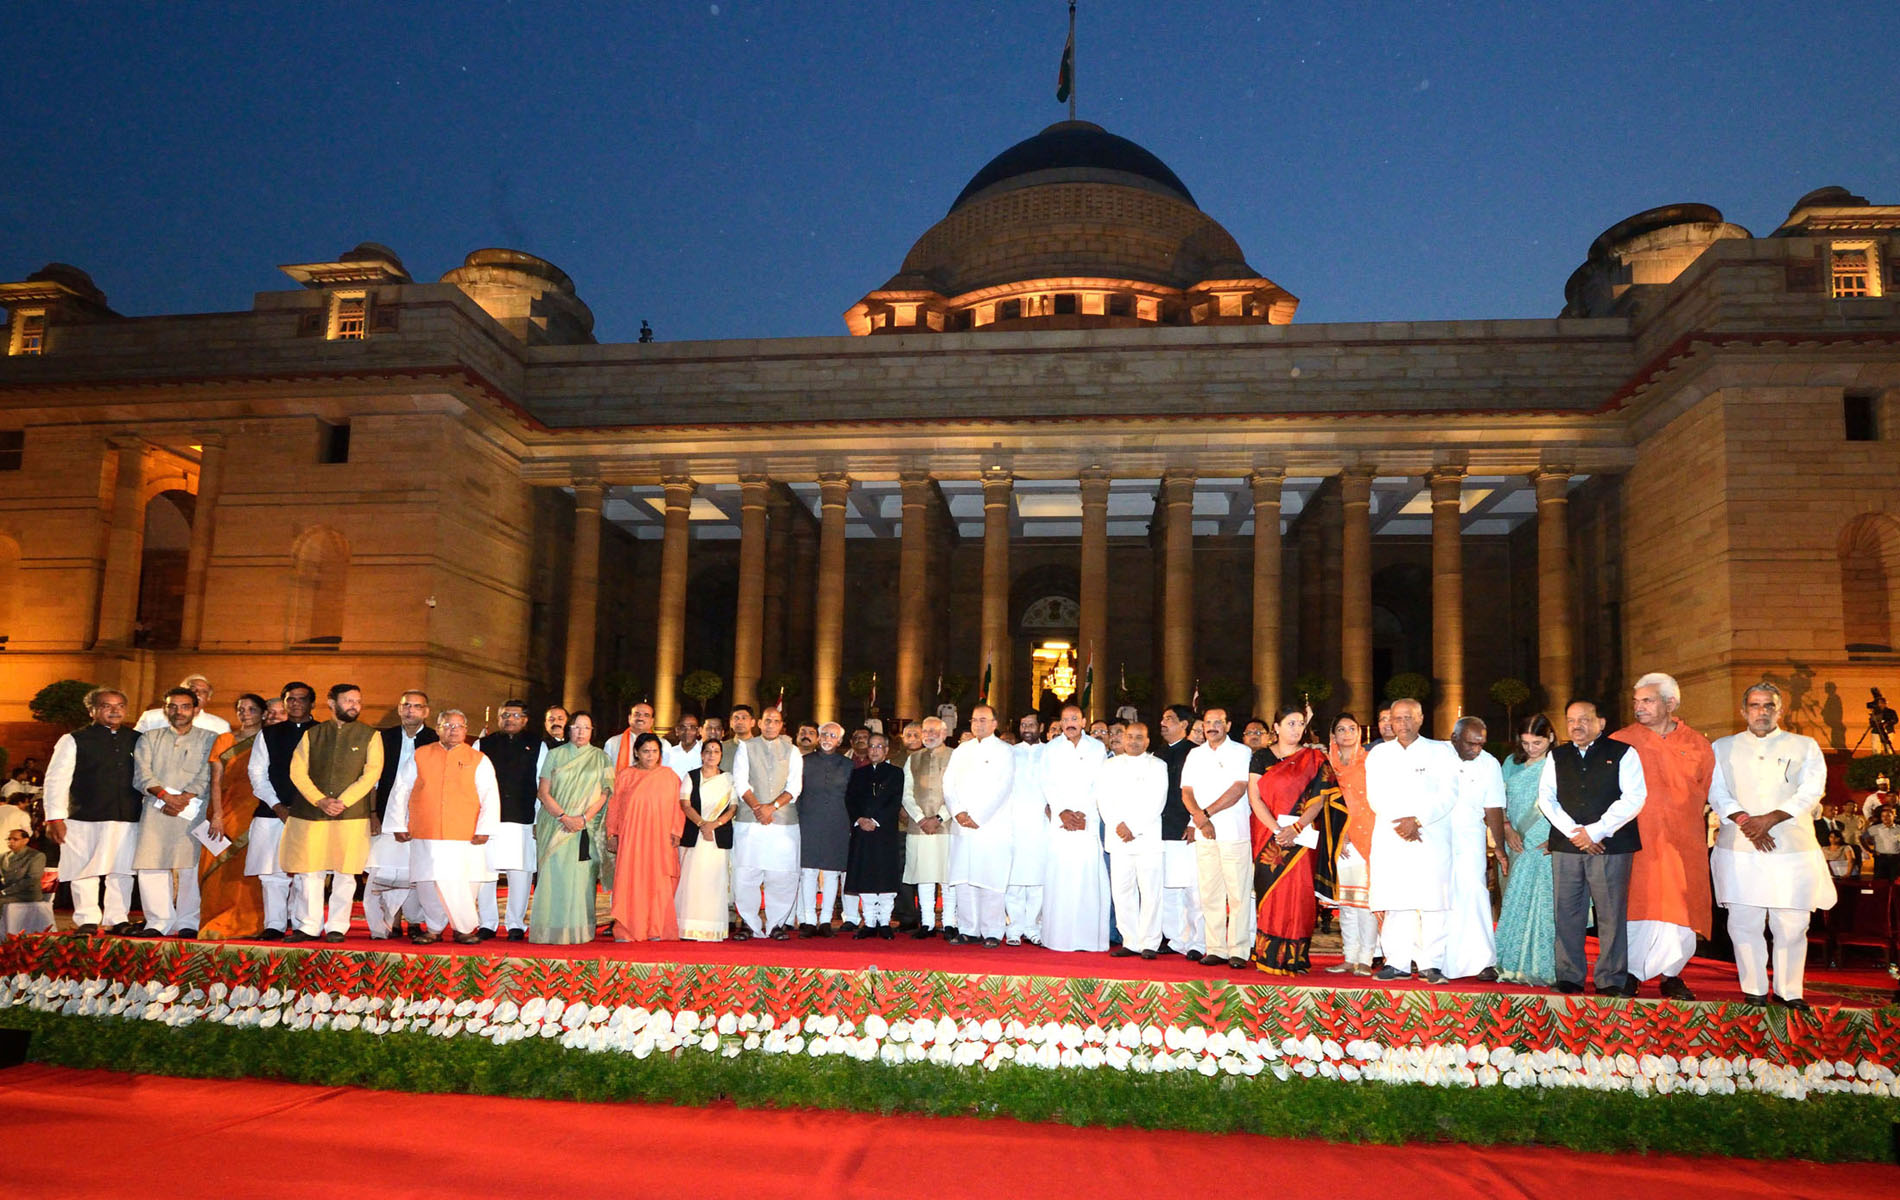 Prime Minister Narendra Modi and his ministers pose with President Pranab Mukherjee and Vice President Hamid Ansari after the swearing-in